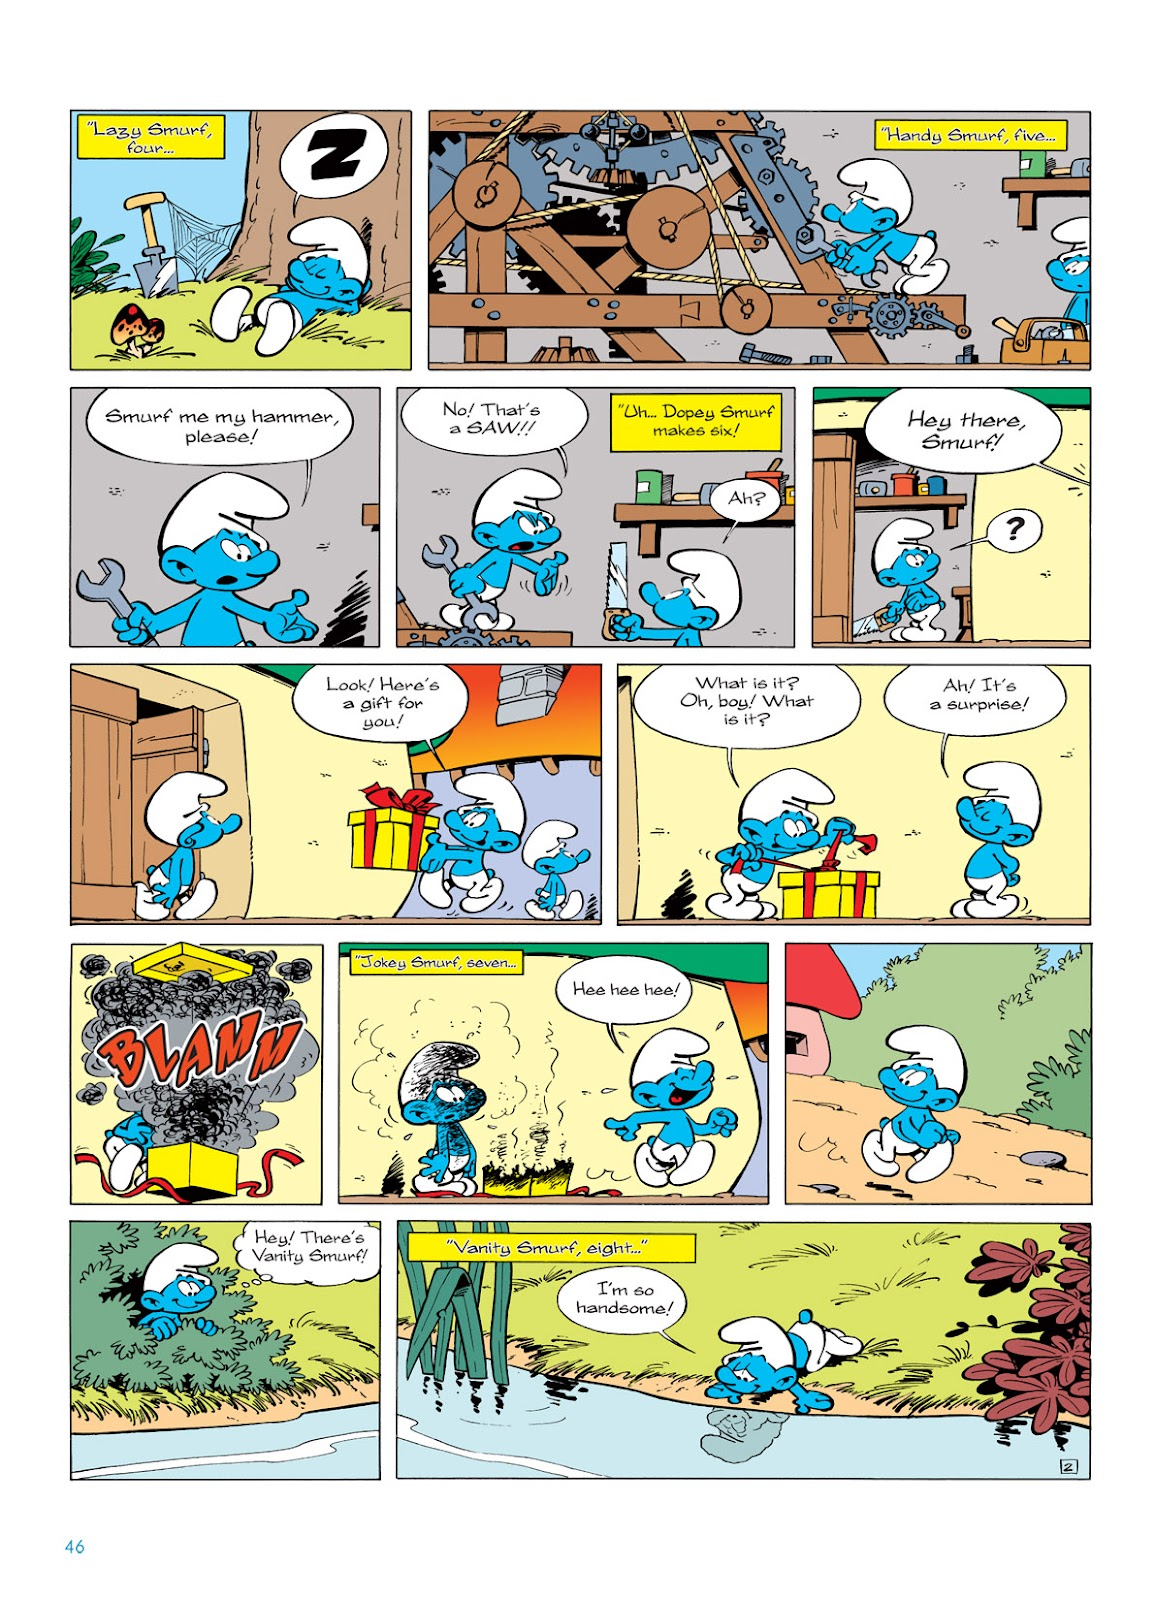 Read online The Smurfs comic -  Issue #5 - 46